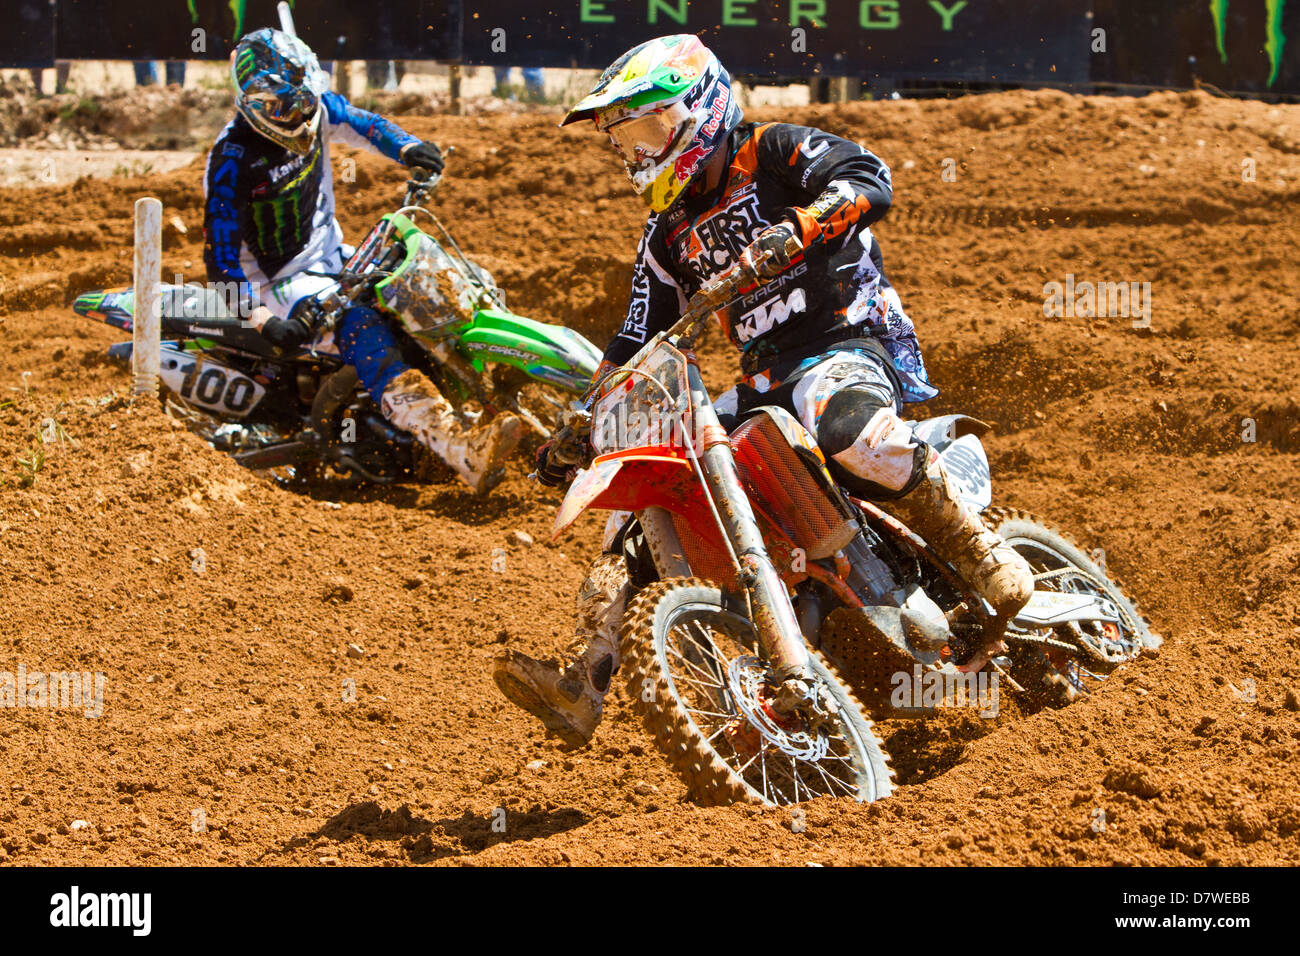 Agueda, Portugal, 5th May 2013, World Championship MX1, Portuguese Rui Goncalves with a KTM, 9th race 1 and 11th - Stock Image